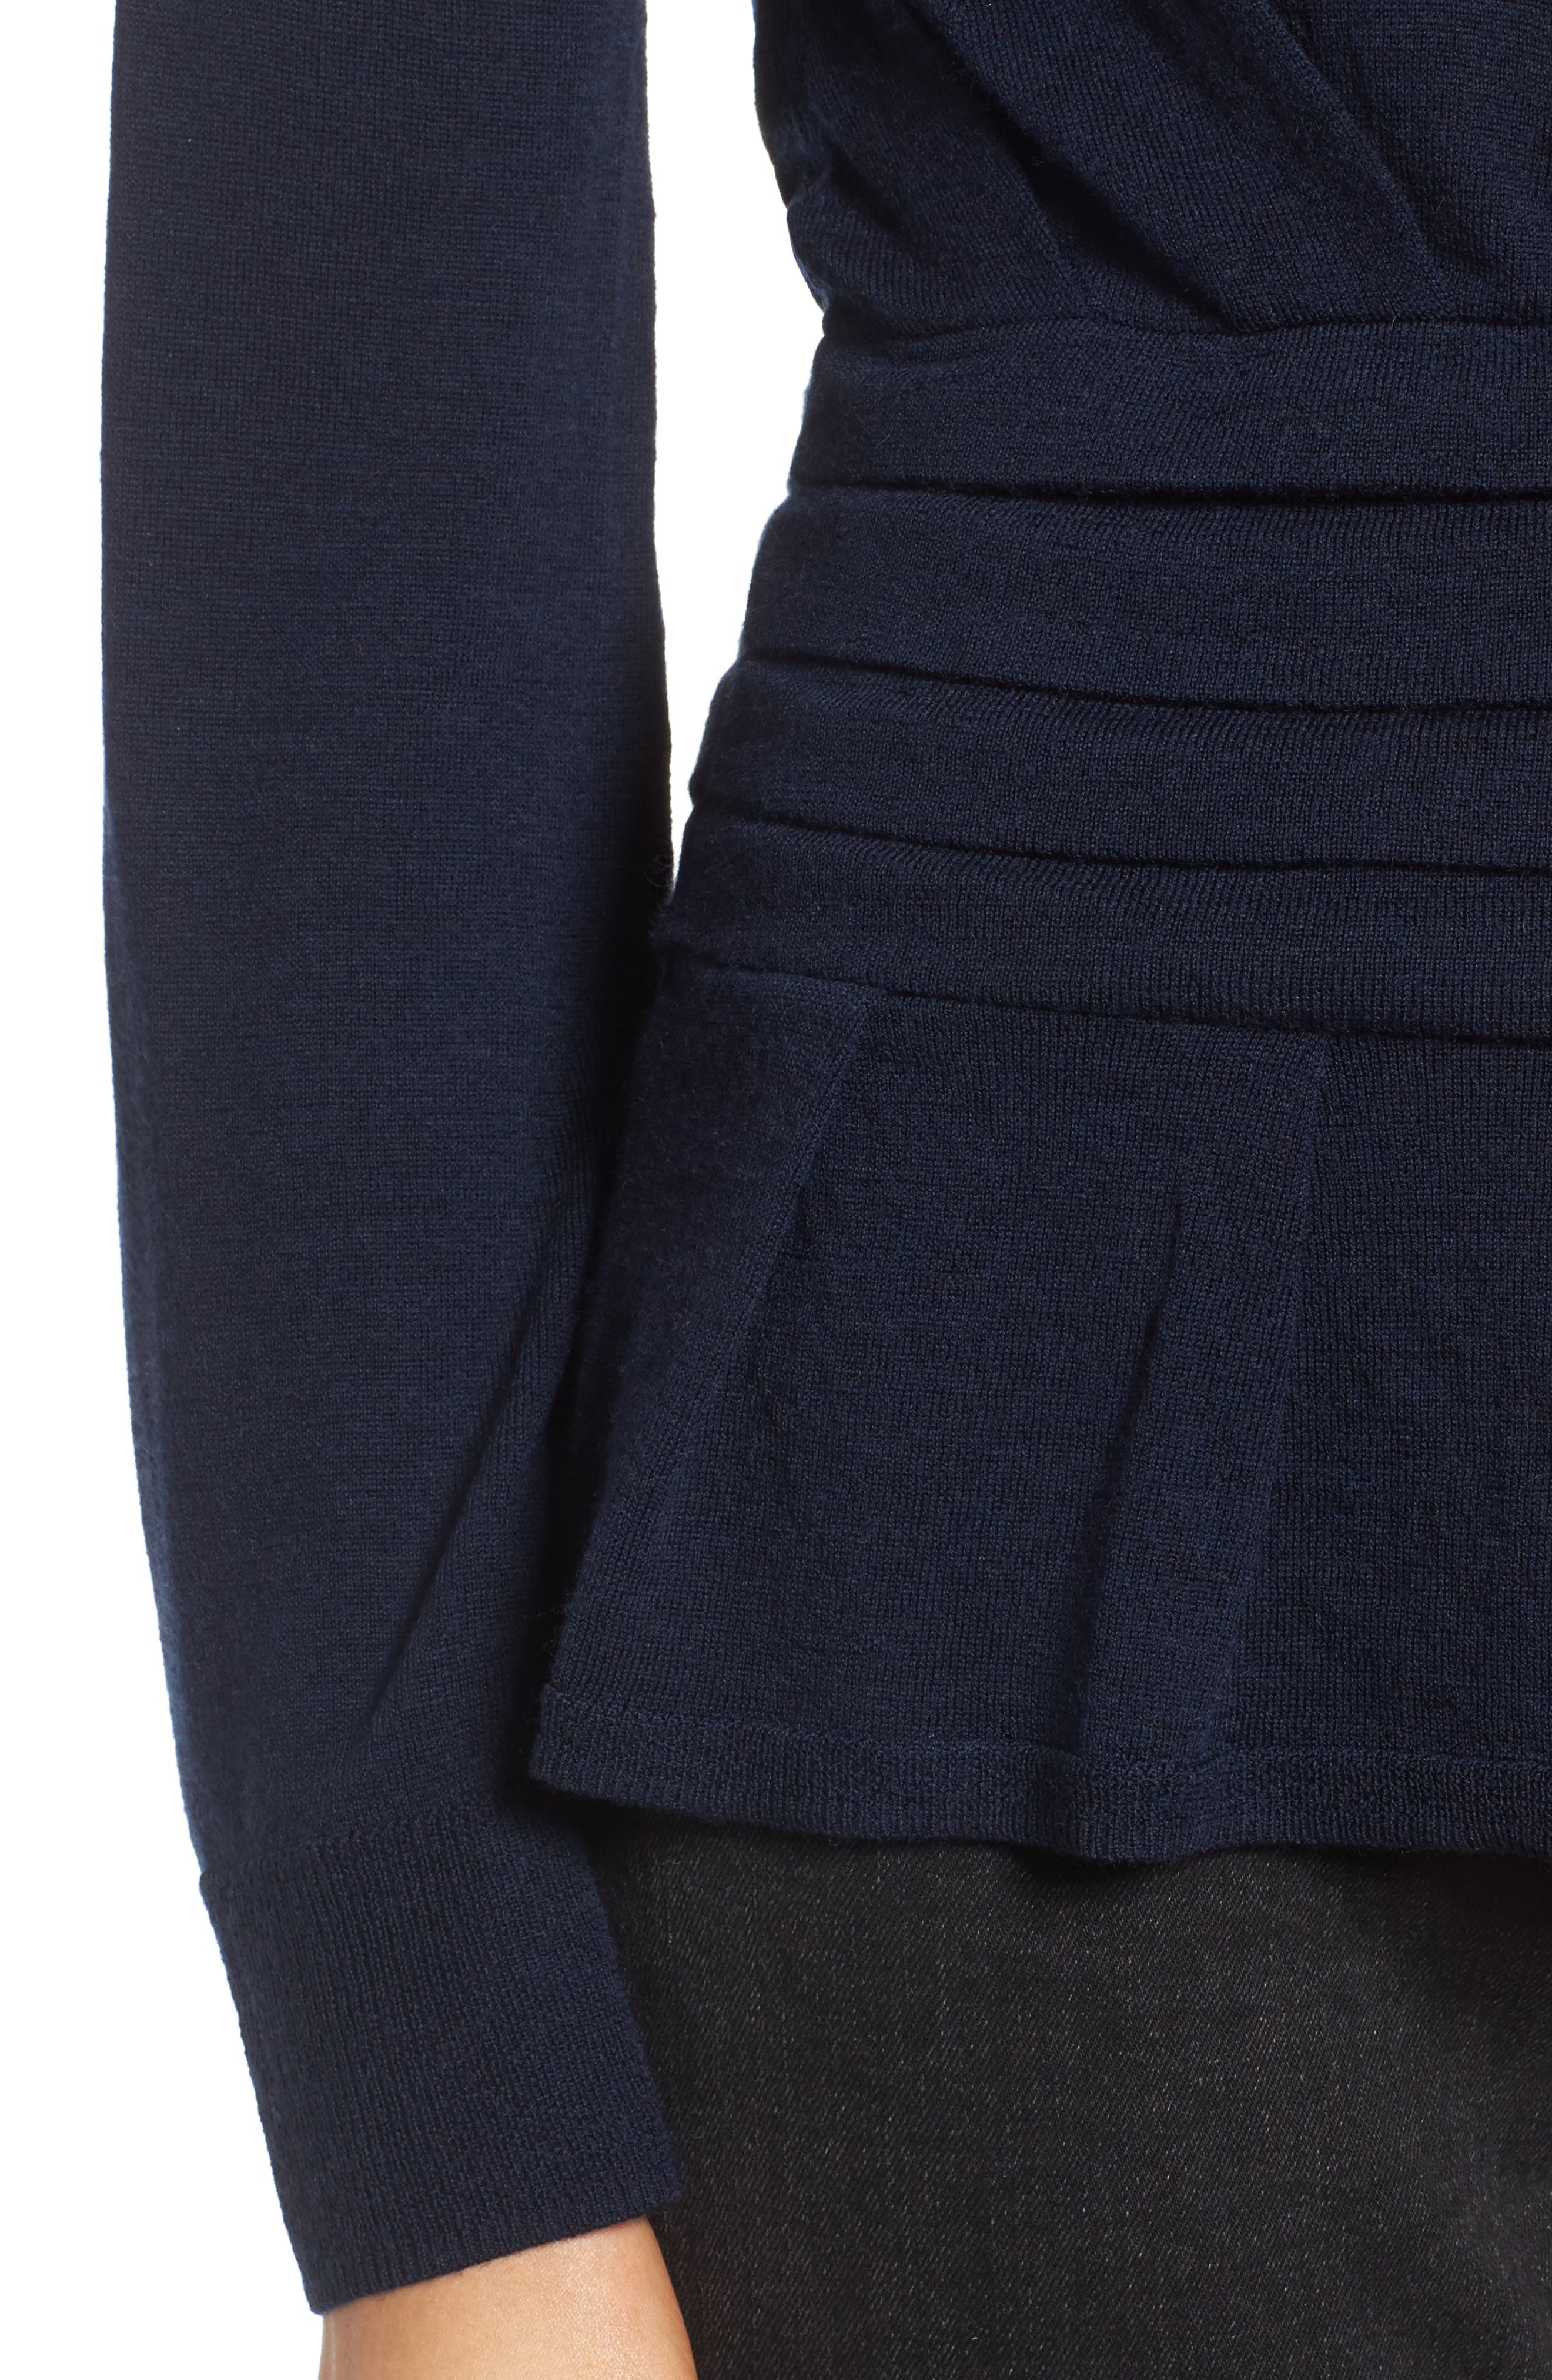 x Something Navy One-Sleeve Sweater,                             Alternate thumbnail 4, color,